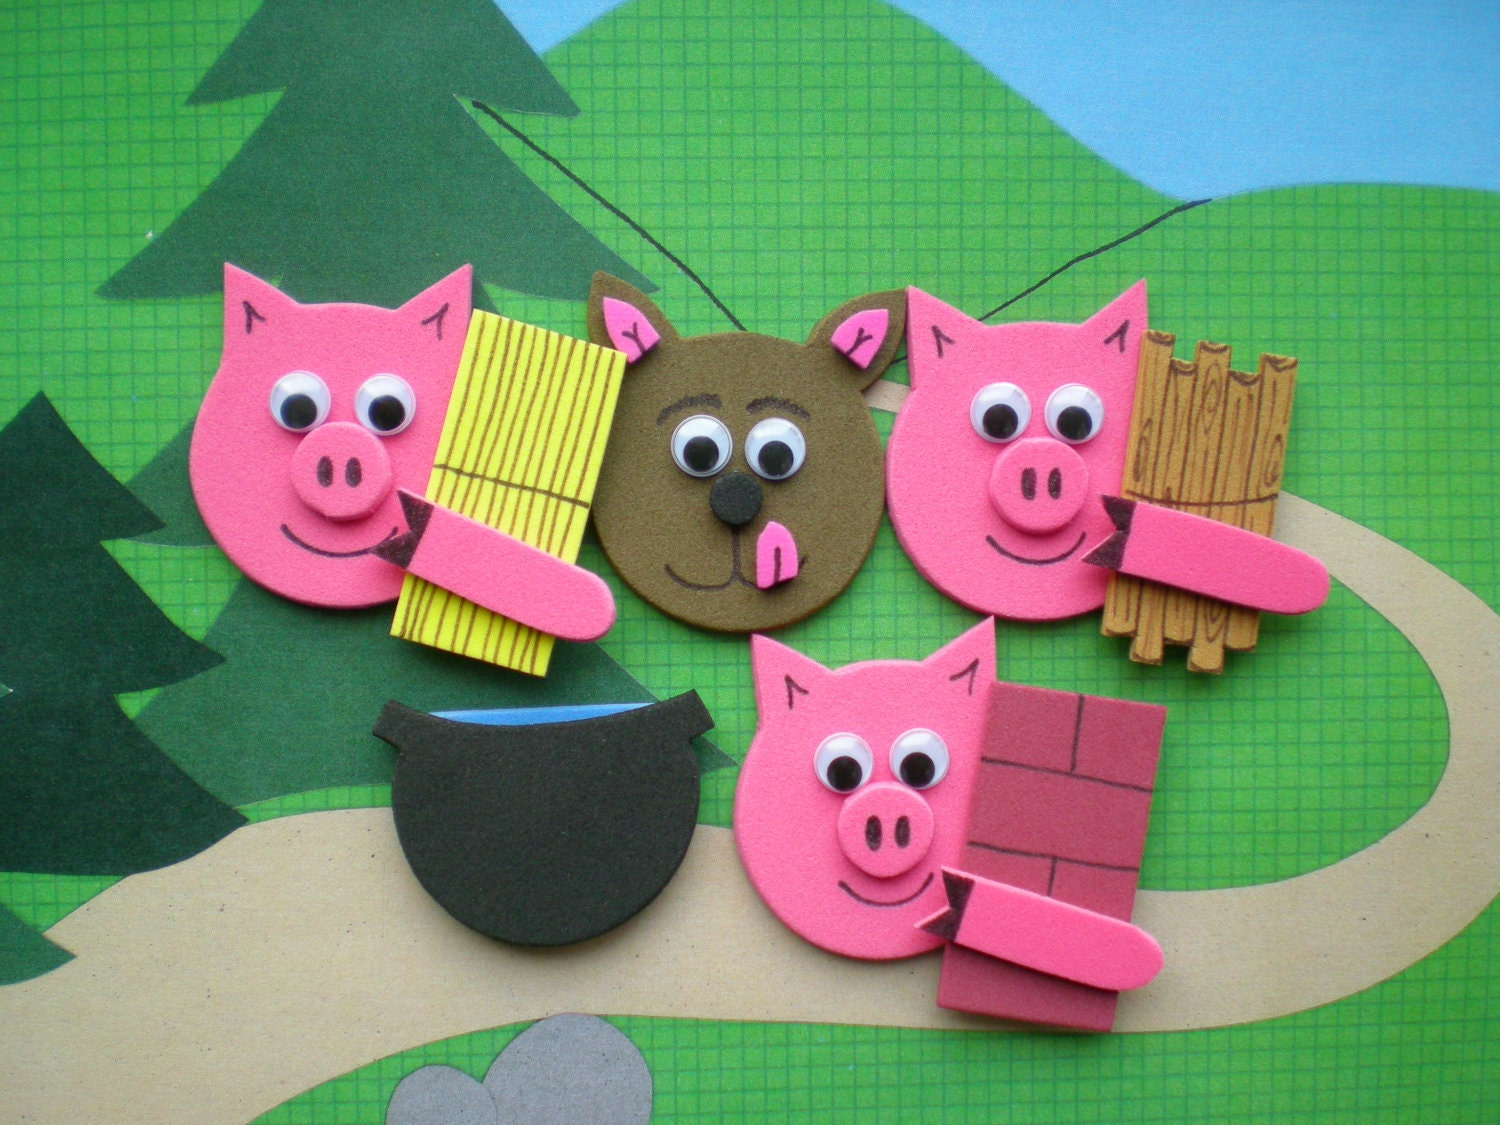 The Three Little Pigs Story Pieces , Felt Board Stories, Flannel Board Stories - SoSimpleSoSweet